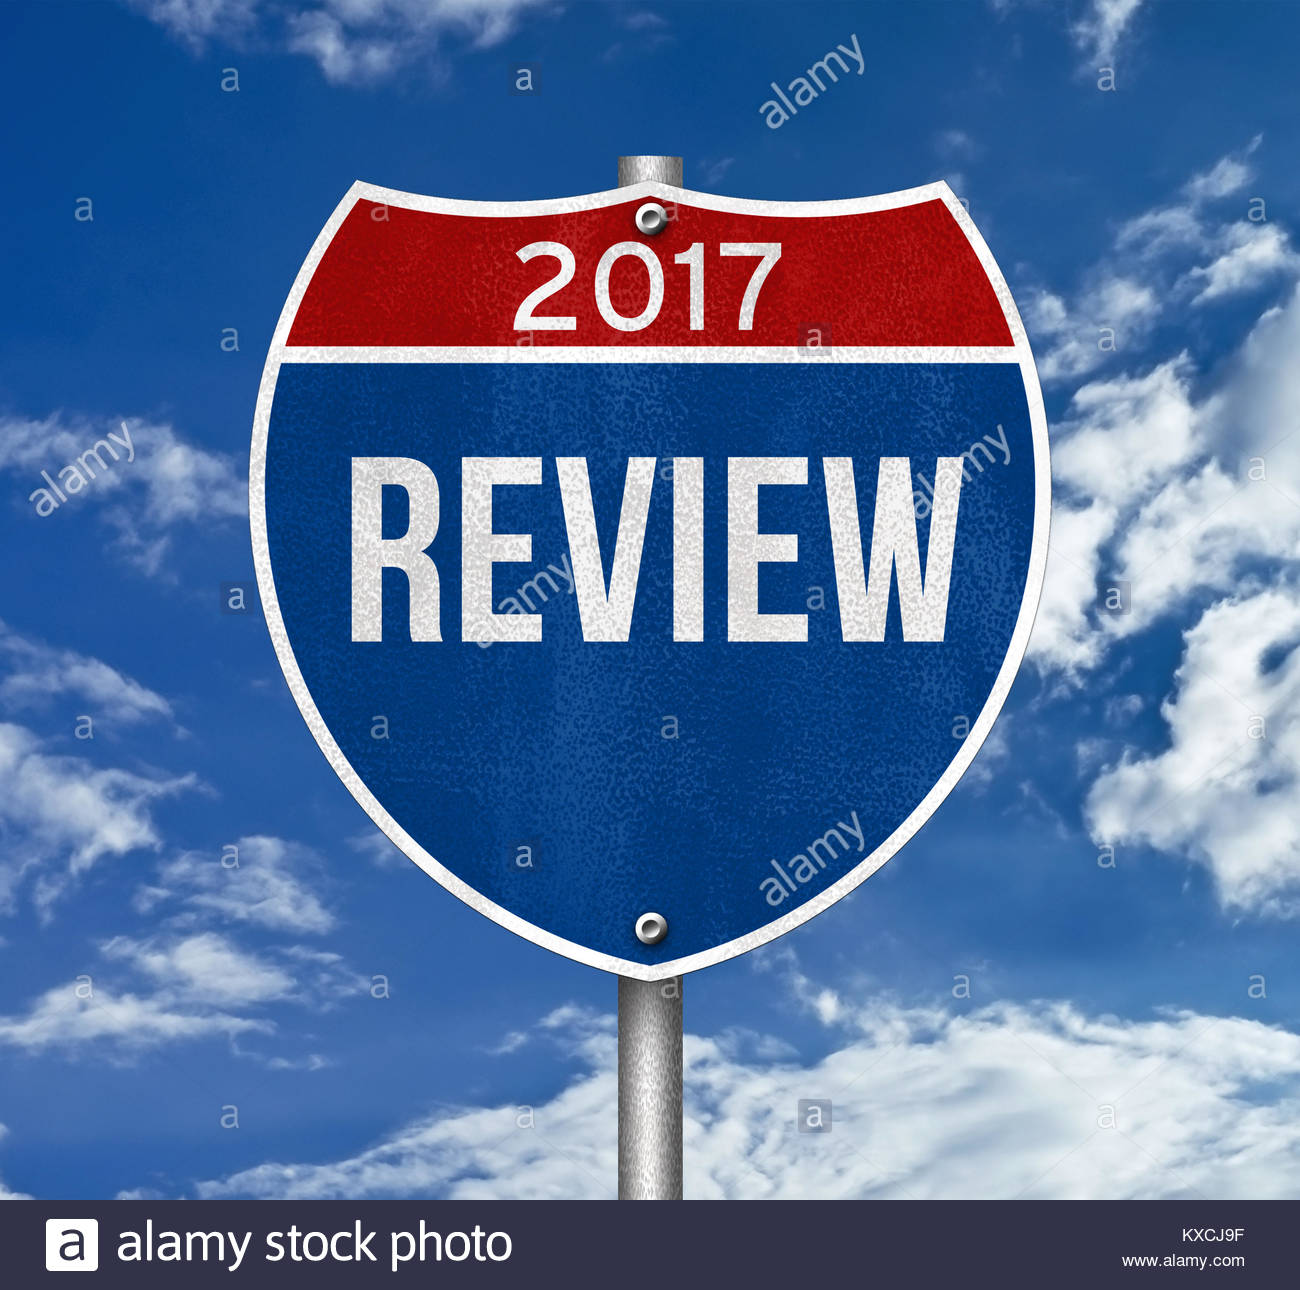 Review 2017 - Stock Image